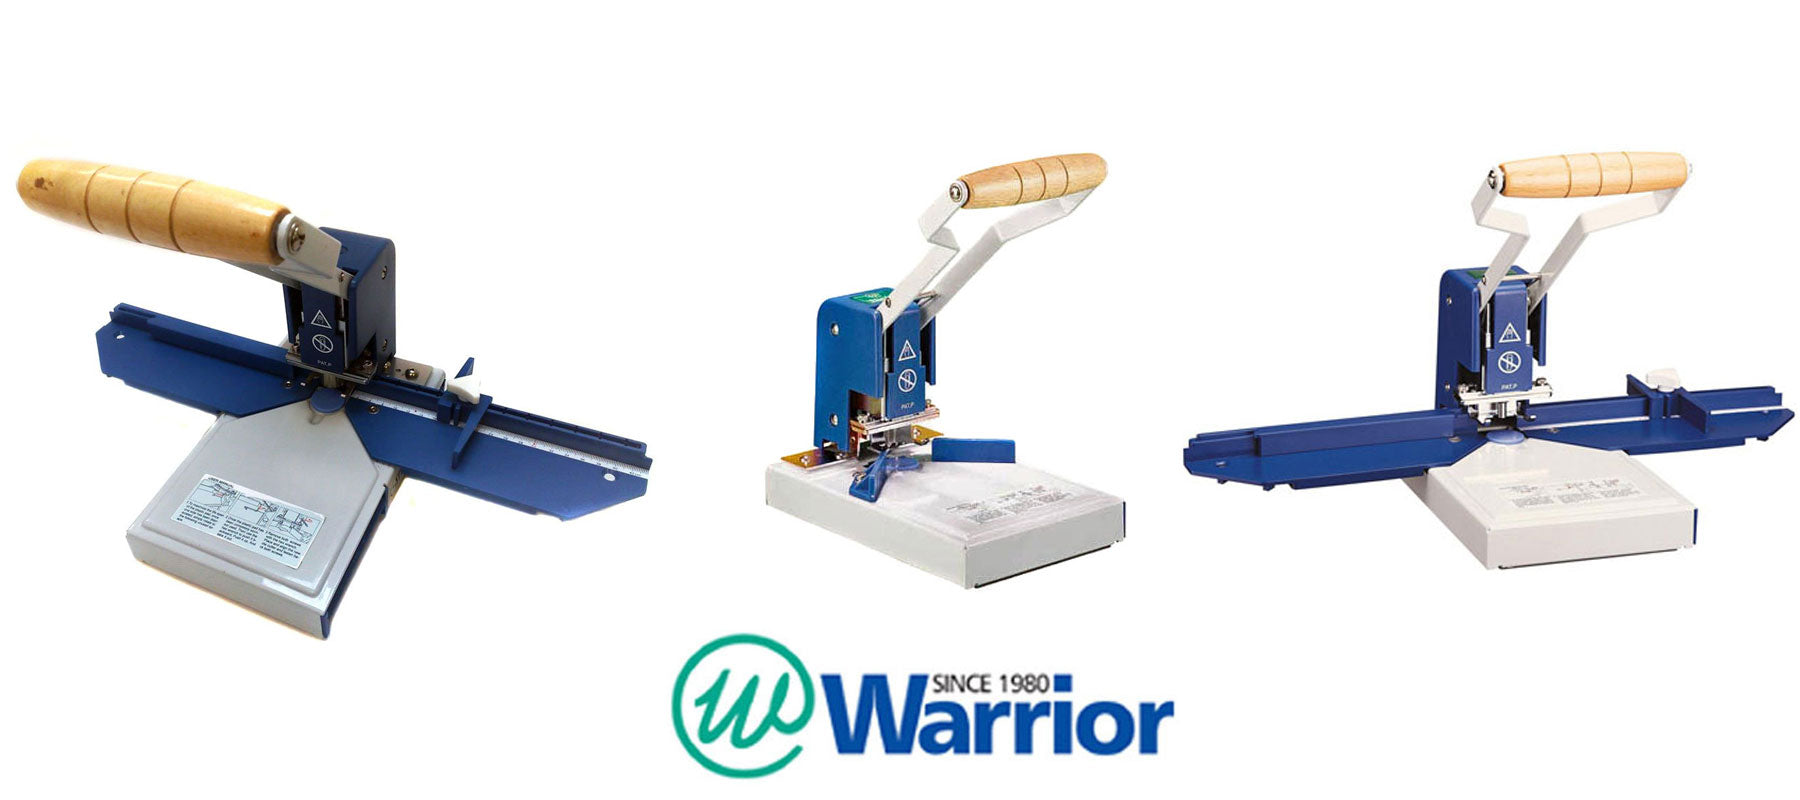 Warrior desktop cutters